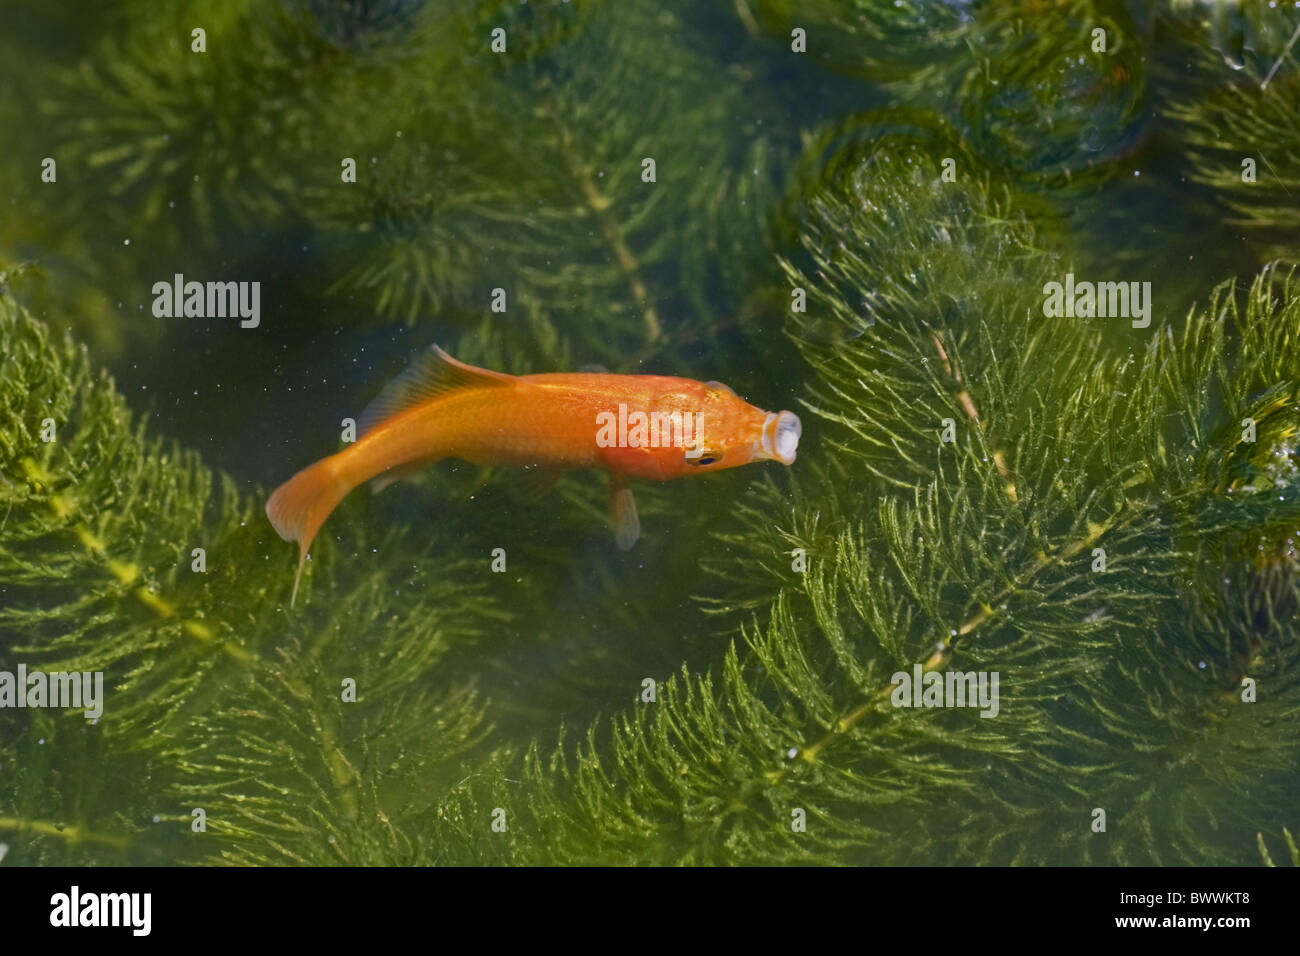 Freshwater aquarium fish from asia - Goldfish Fish Colour Gold Orange Water Swimming Animal Animals Fish Fishes Freshwater Asia Asian Gibel Carp Aquatic Domestic